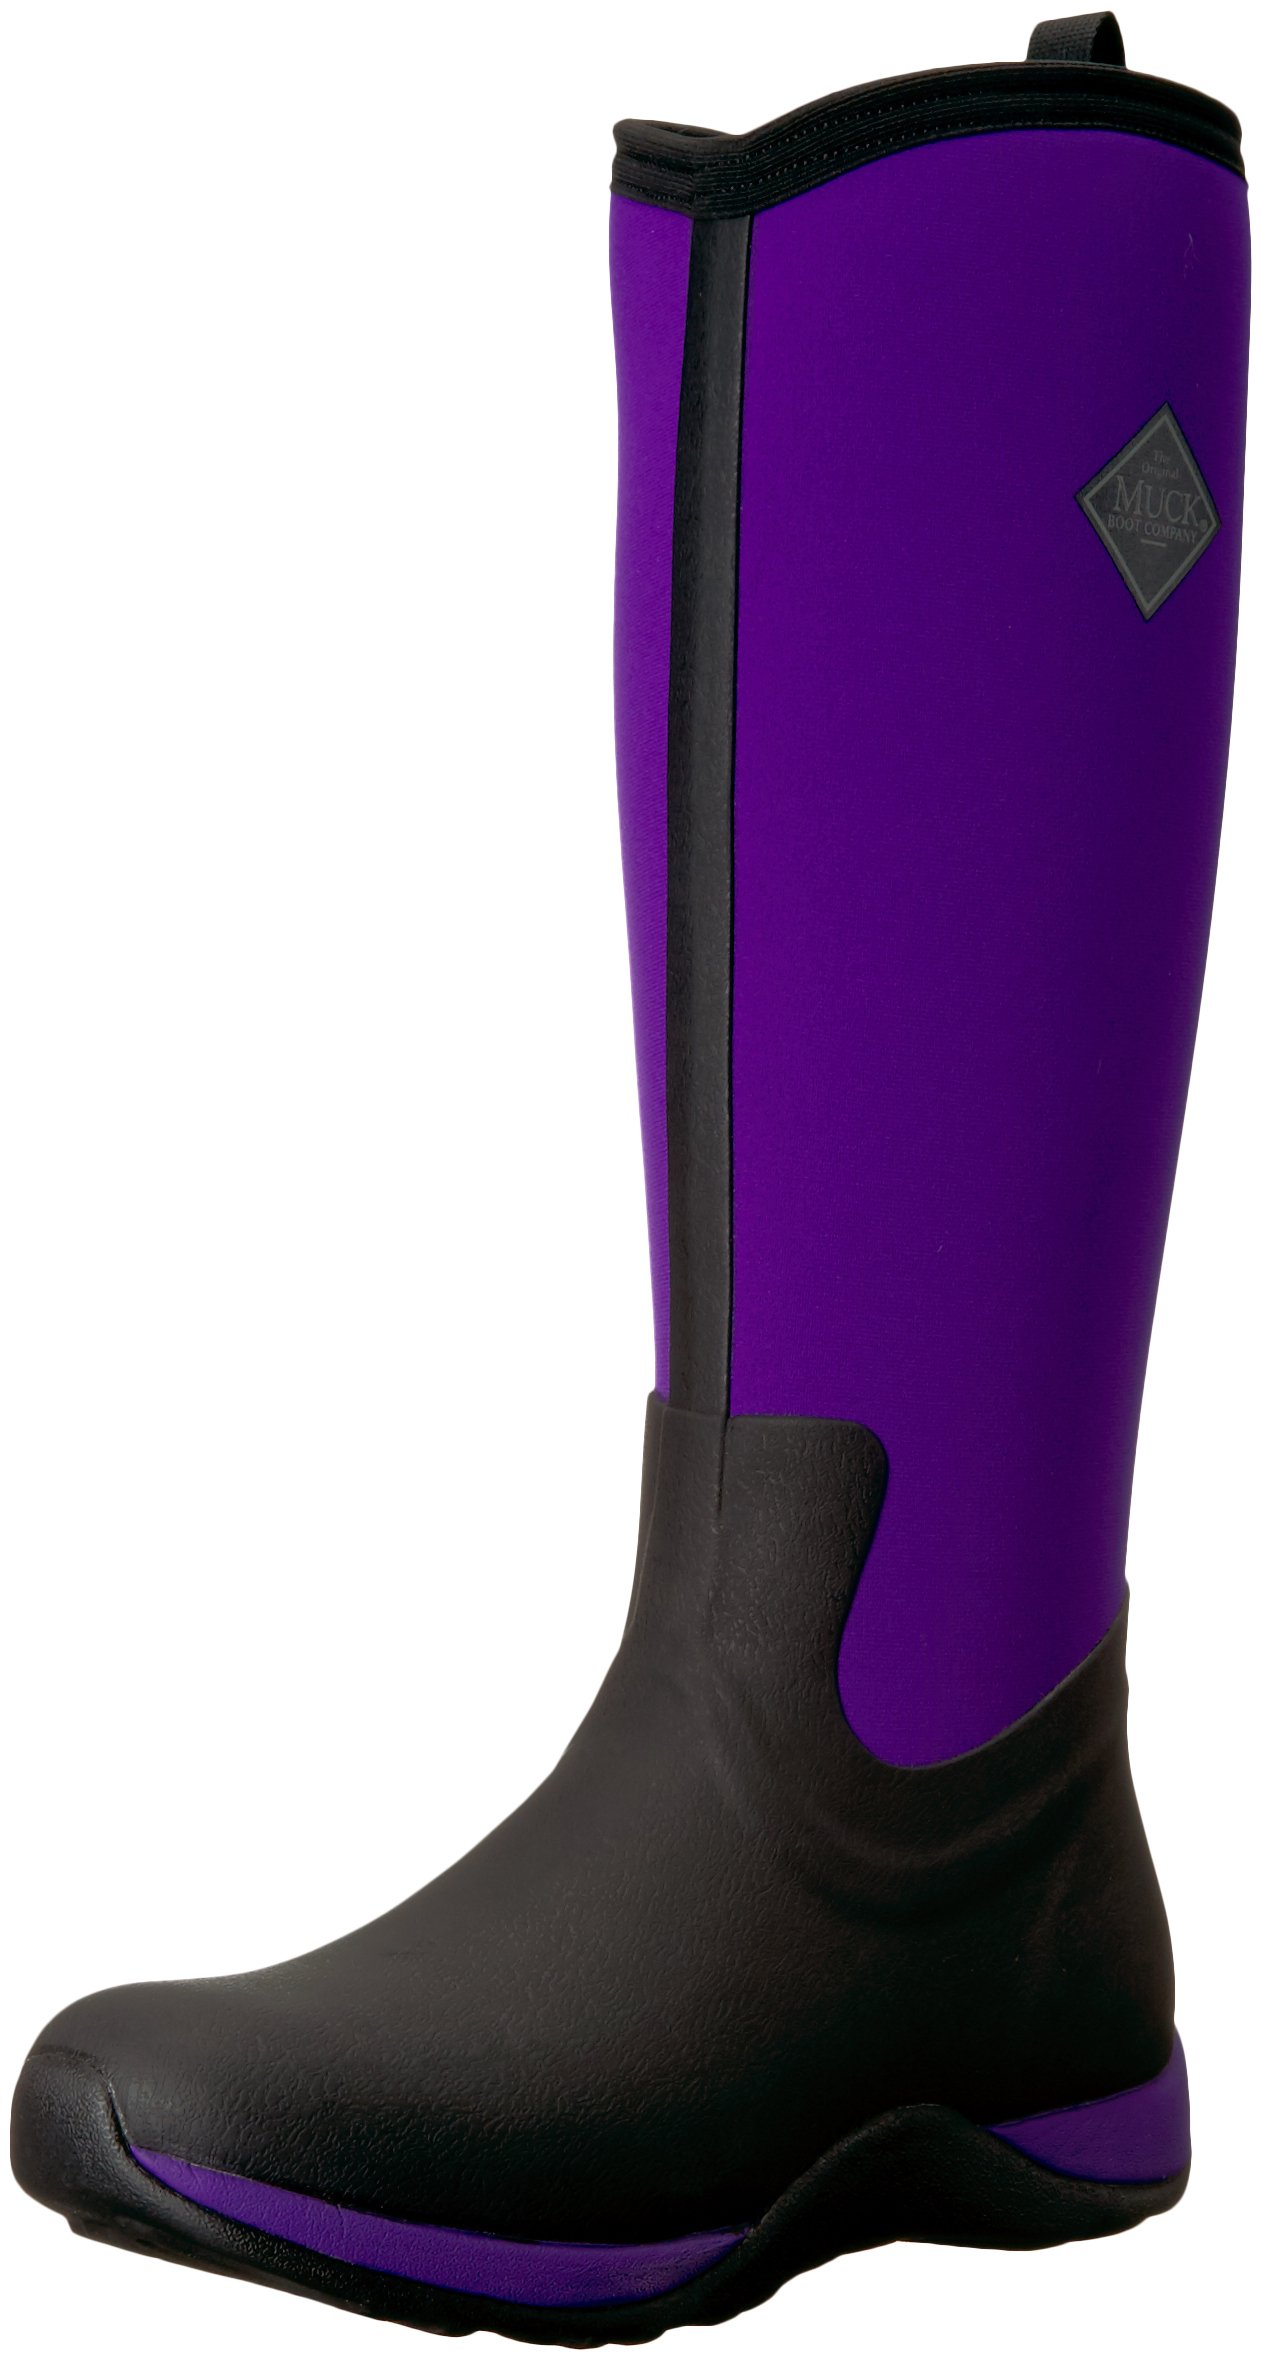 Muck Arctic Adventure Tall Rubber Women's Winter Boots, 6 M US, Black/Purple by Muck Boot